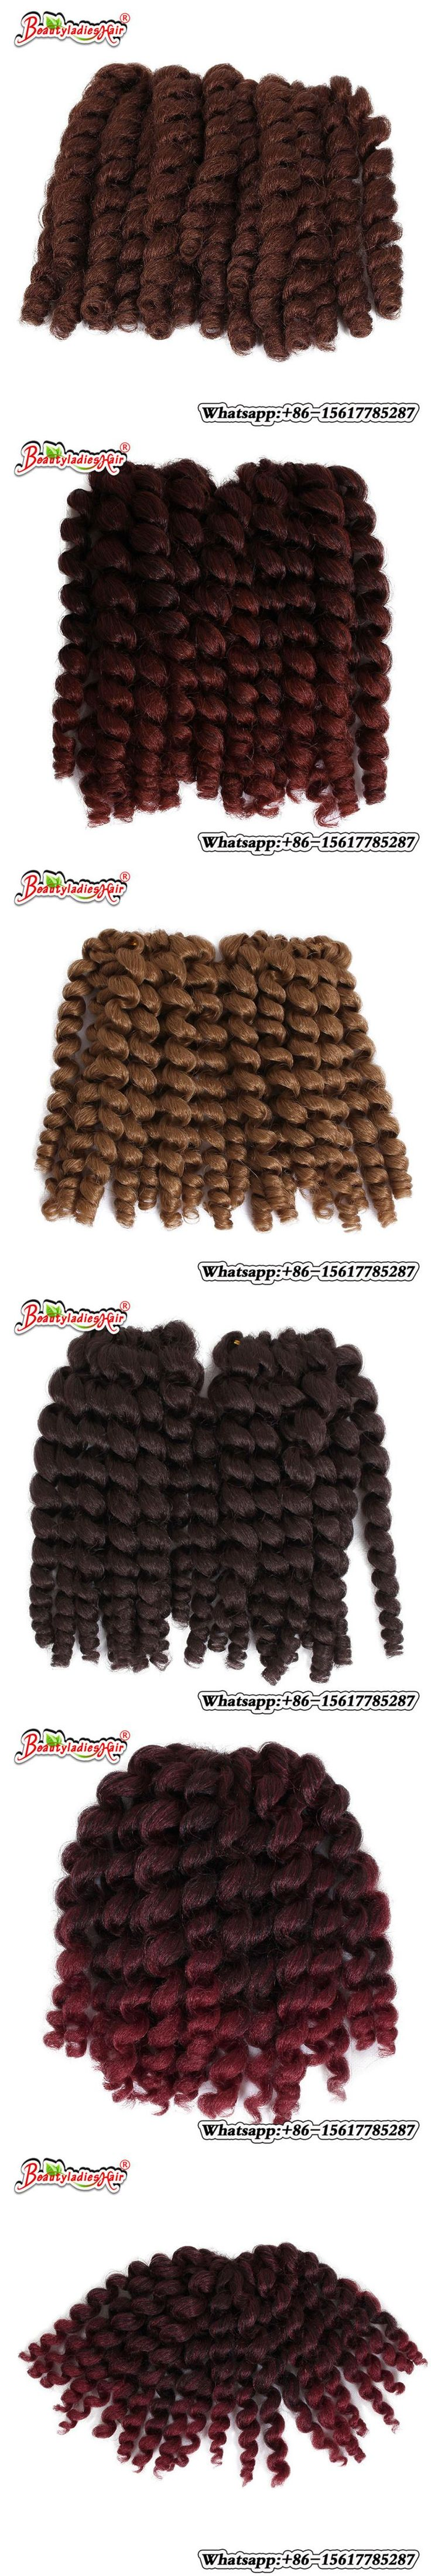 "Braiding Jumpy Wand Curl Bounce Twist Crochet Braids 8"" 20strands/pc Kanekalon Synthetic Hair Extensions"